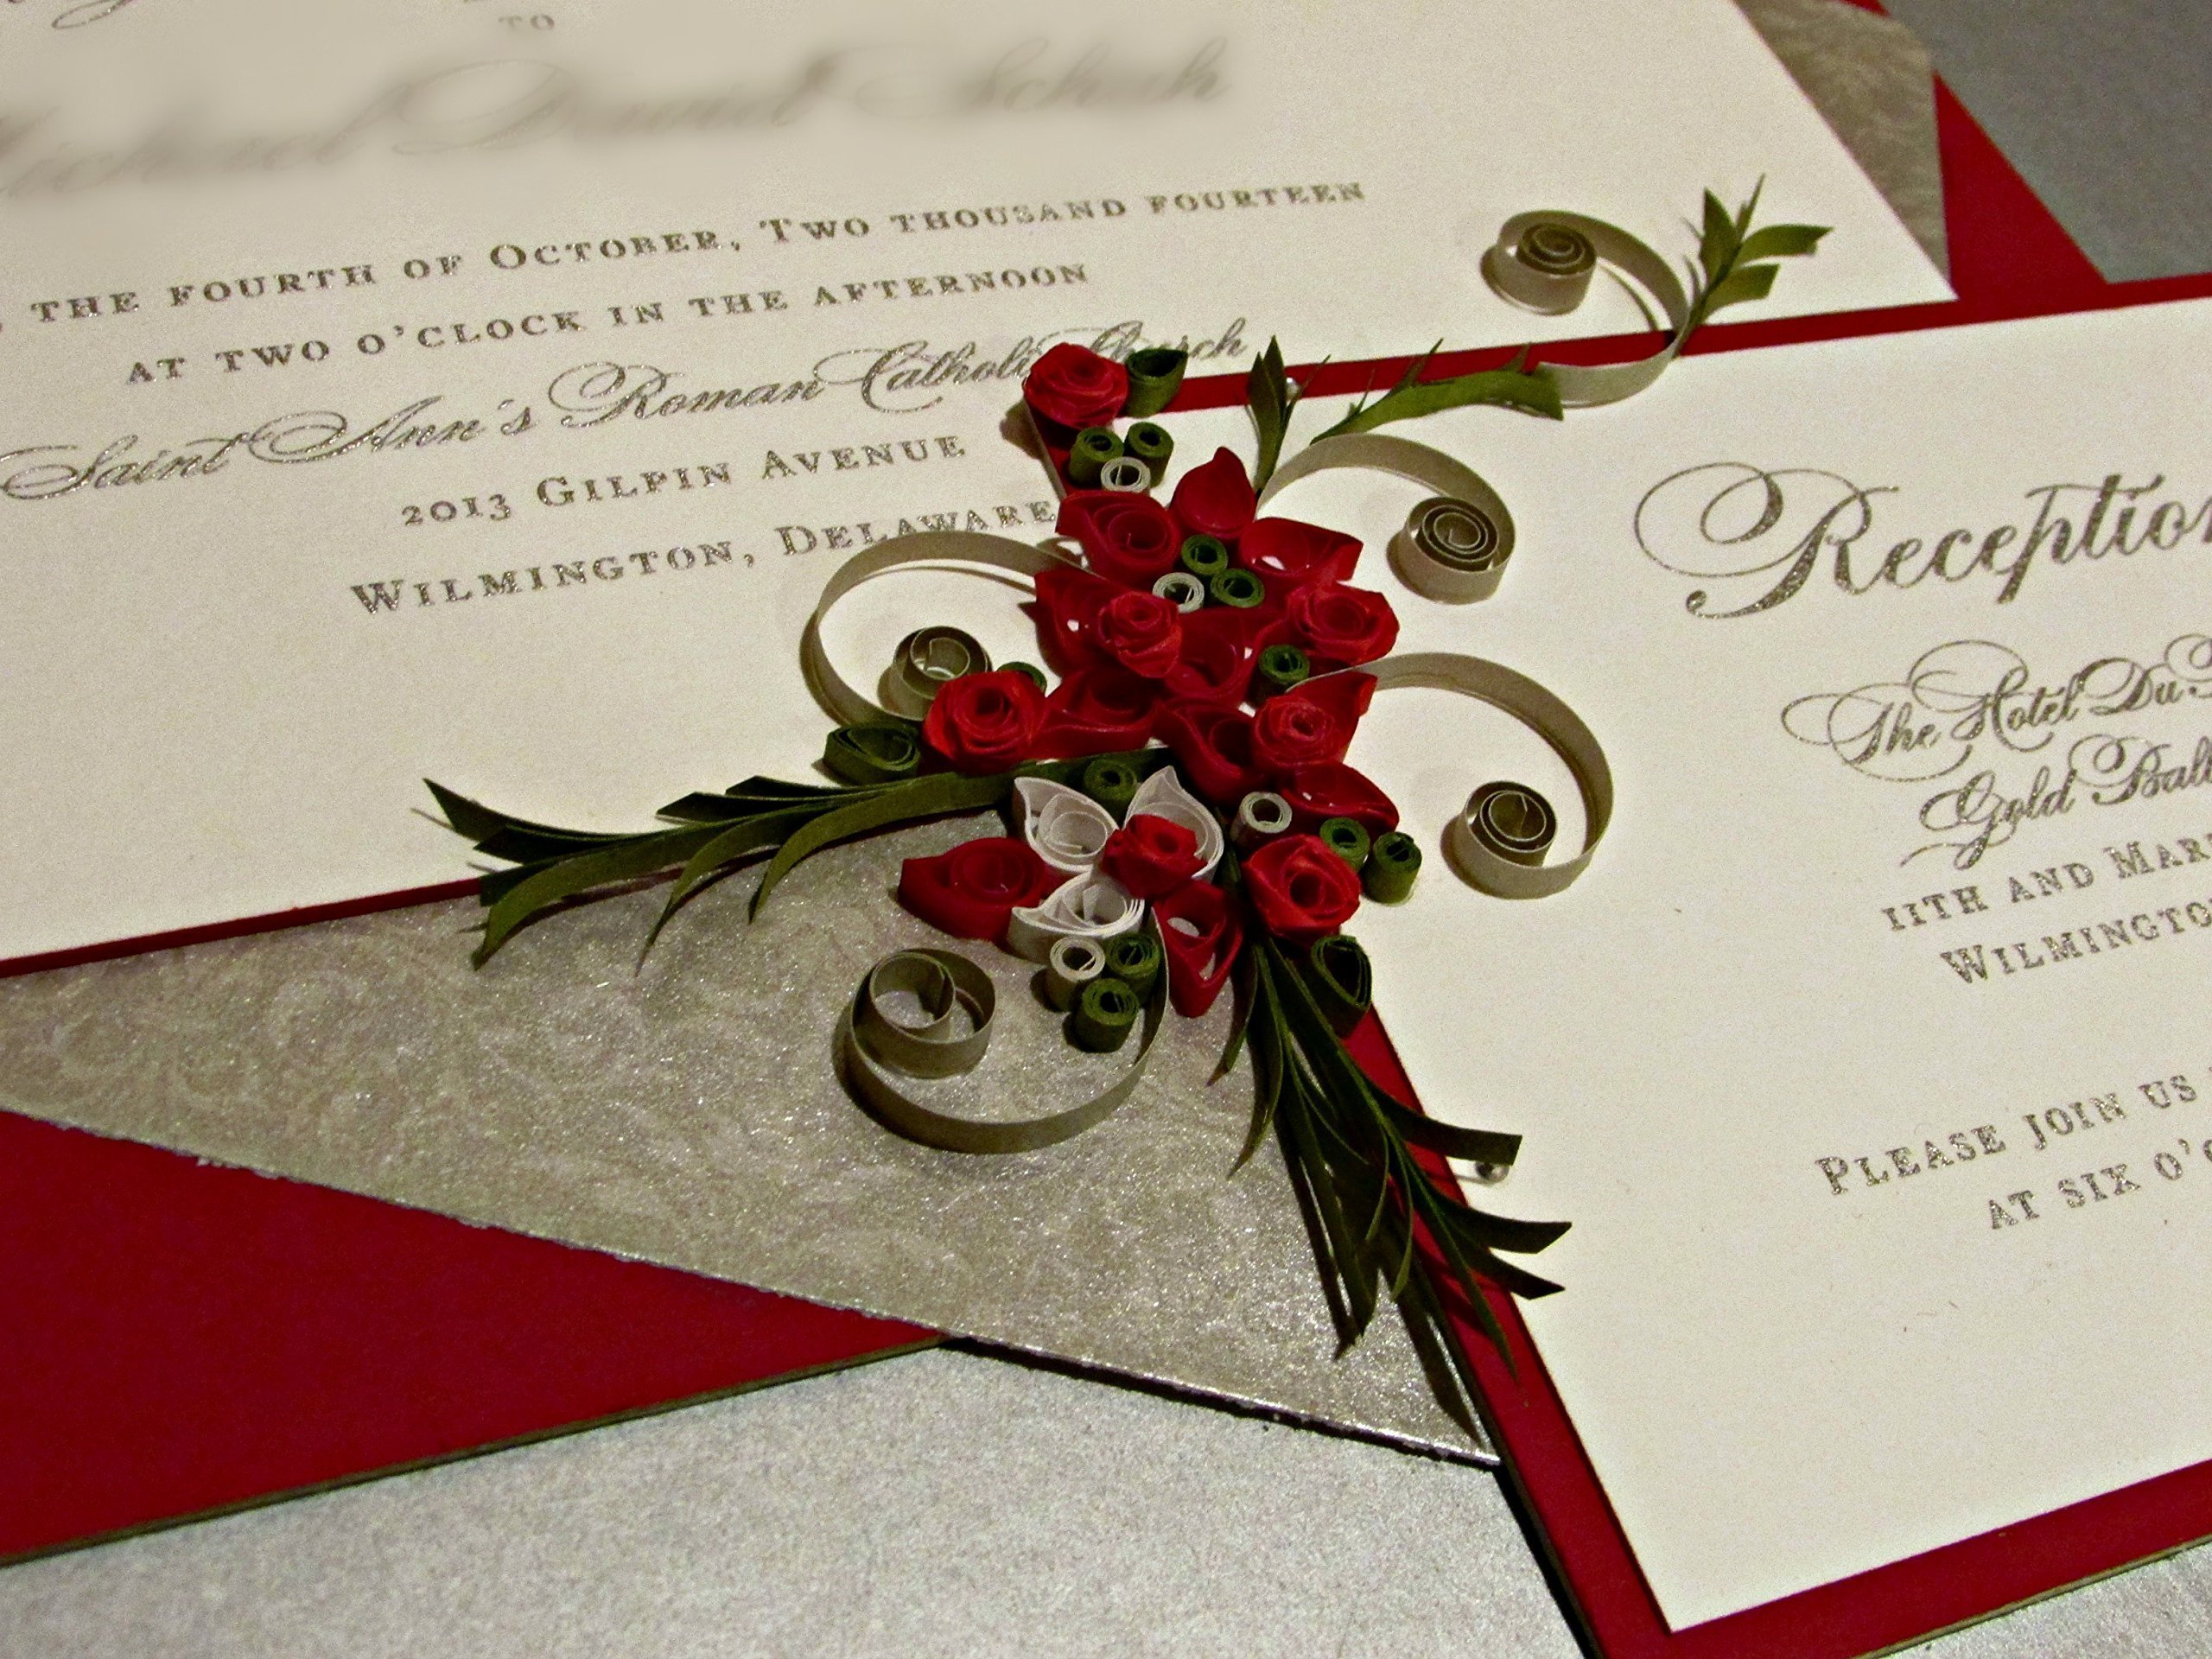 Custom Wedding Gift / Quilled & Framed Wedding Invitation / Paper Quilled Art / Red / Roses / PLATINUM WEDDING by Quillique